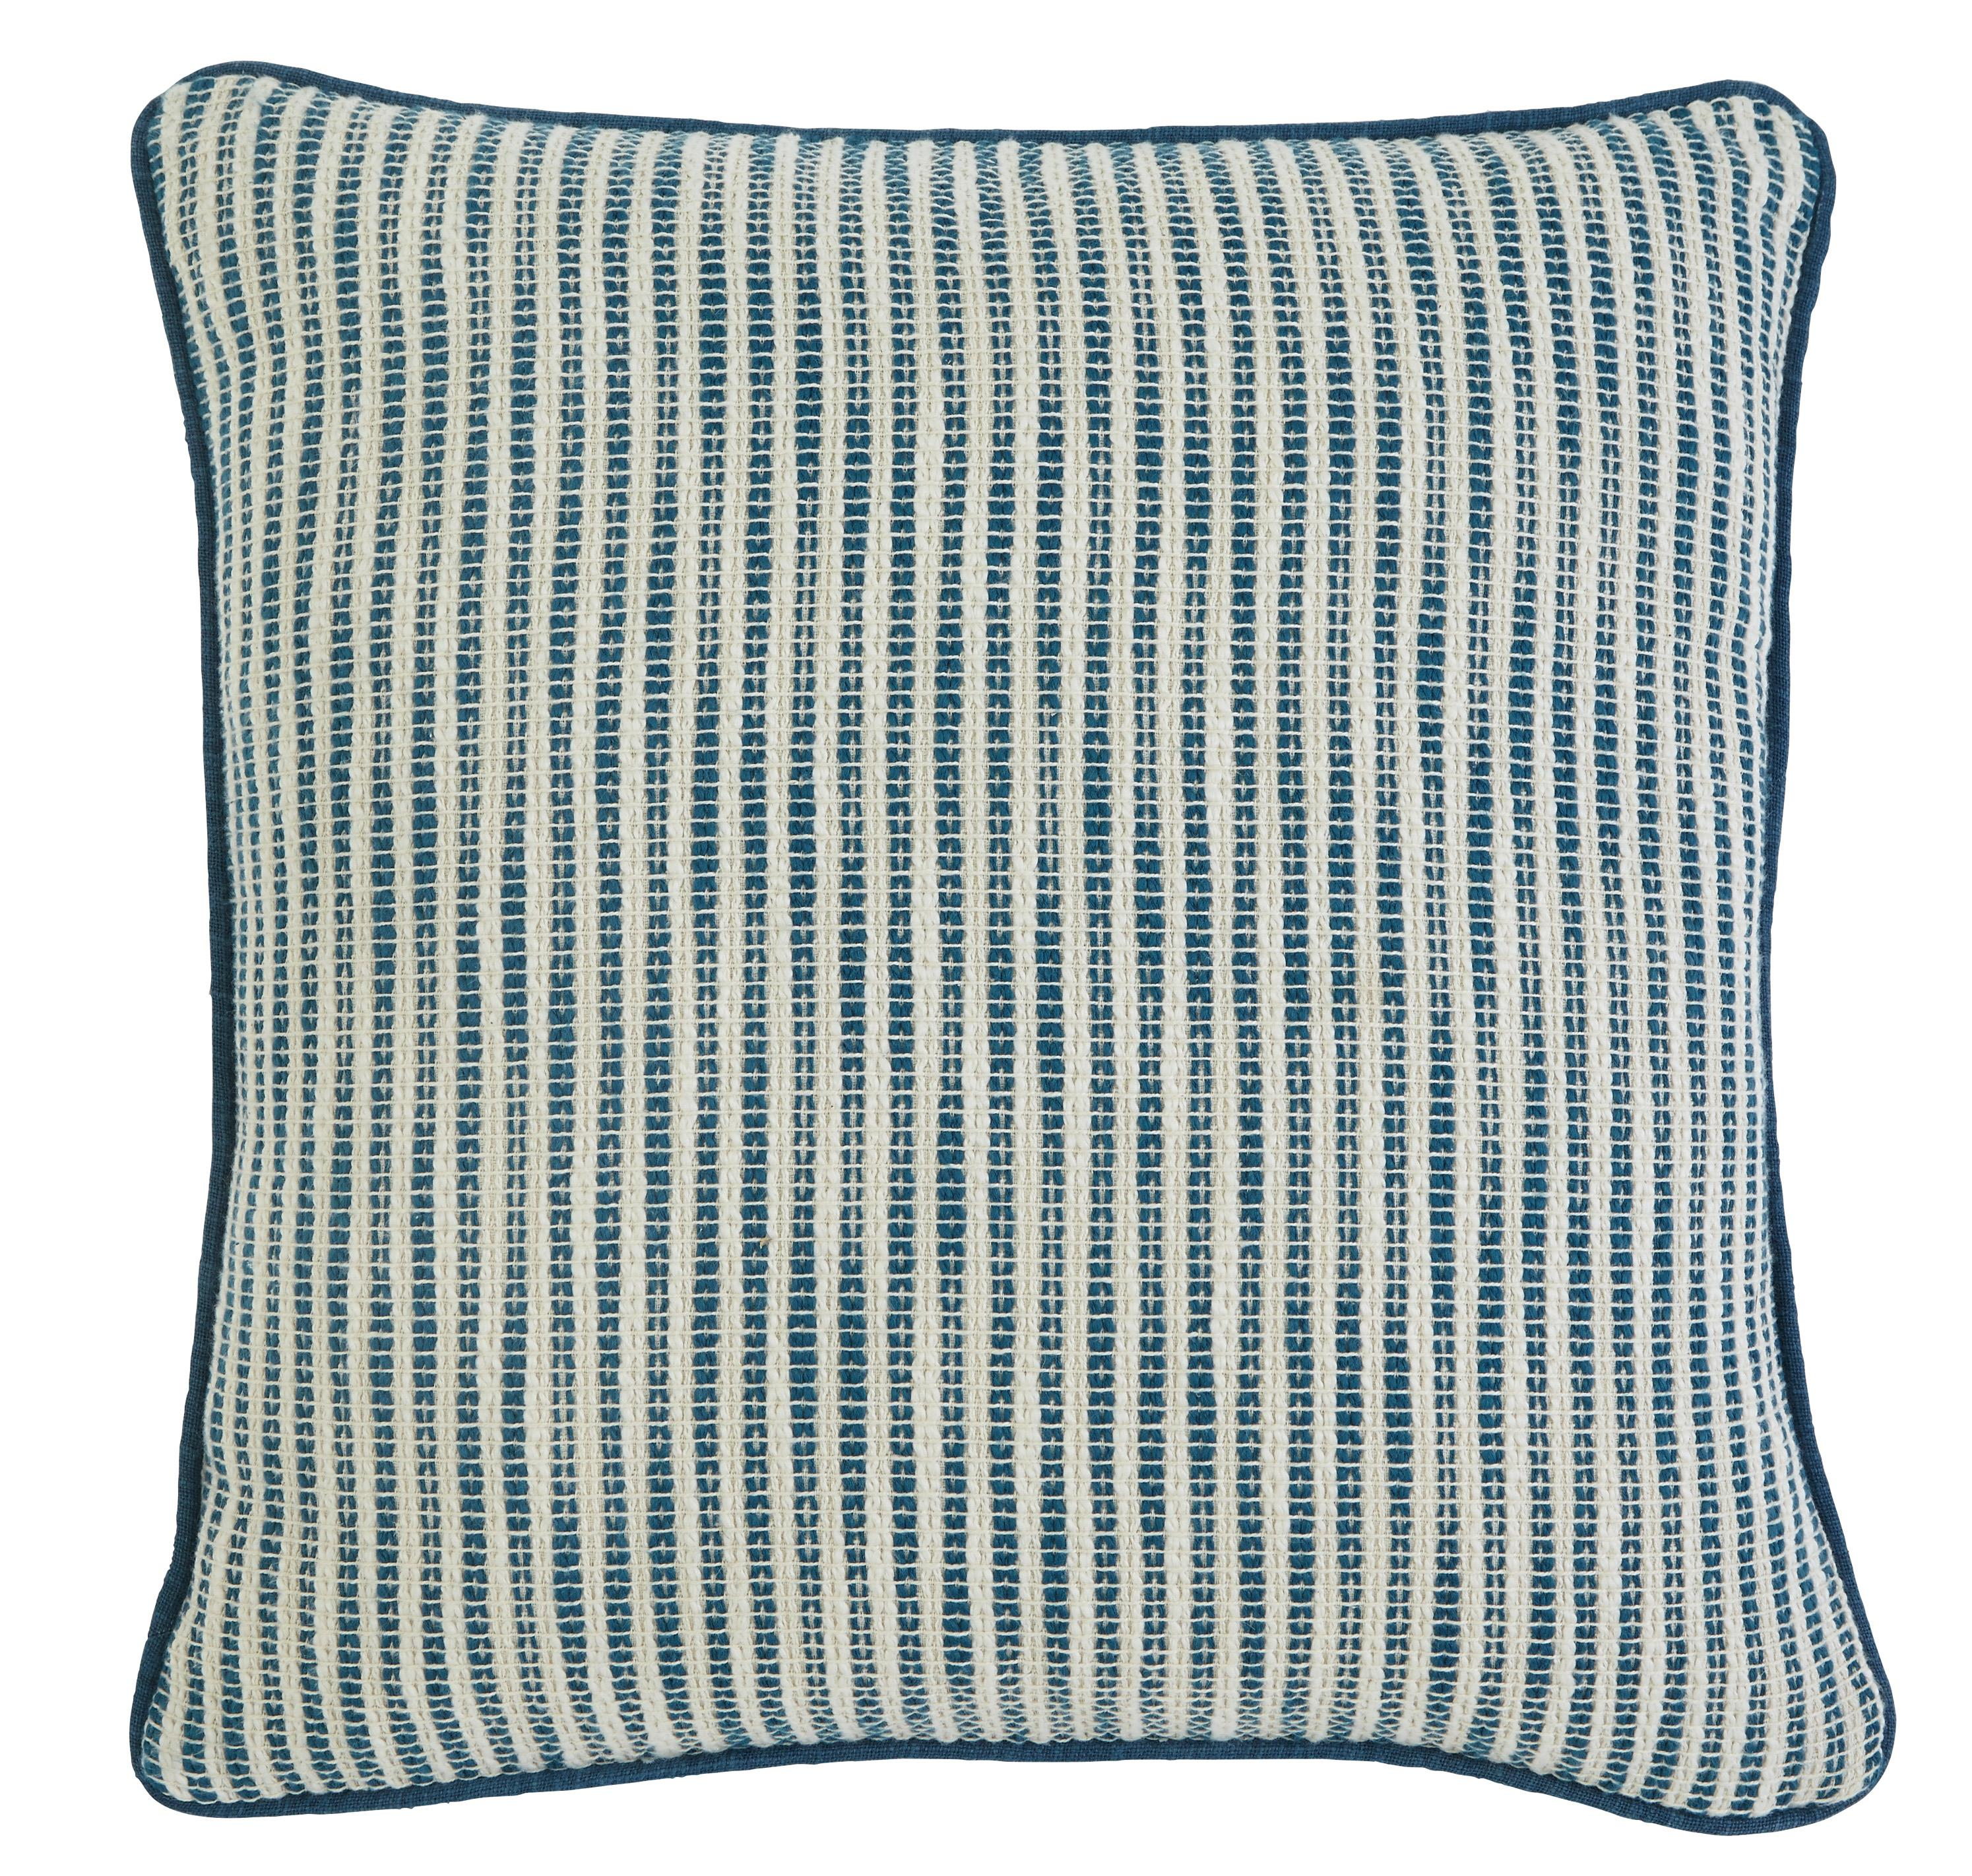 Signature Design by Ashley Pillows Striped - Turquoise - Item Number: A1000363P